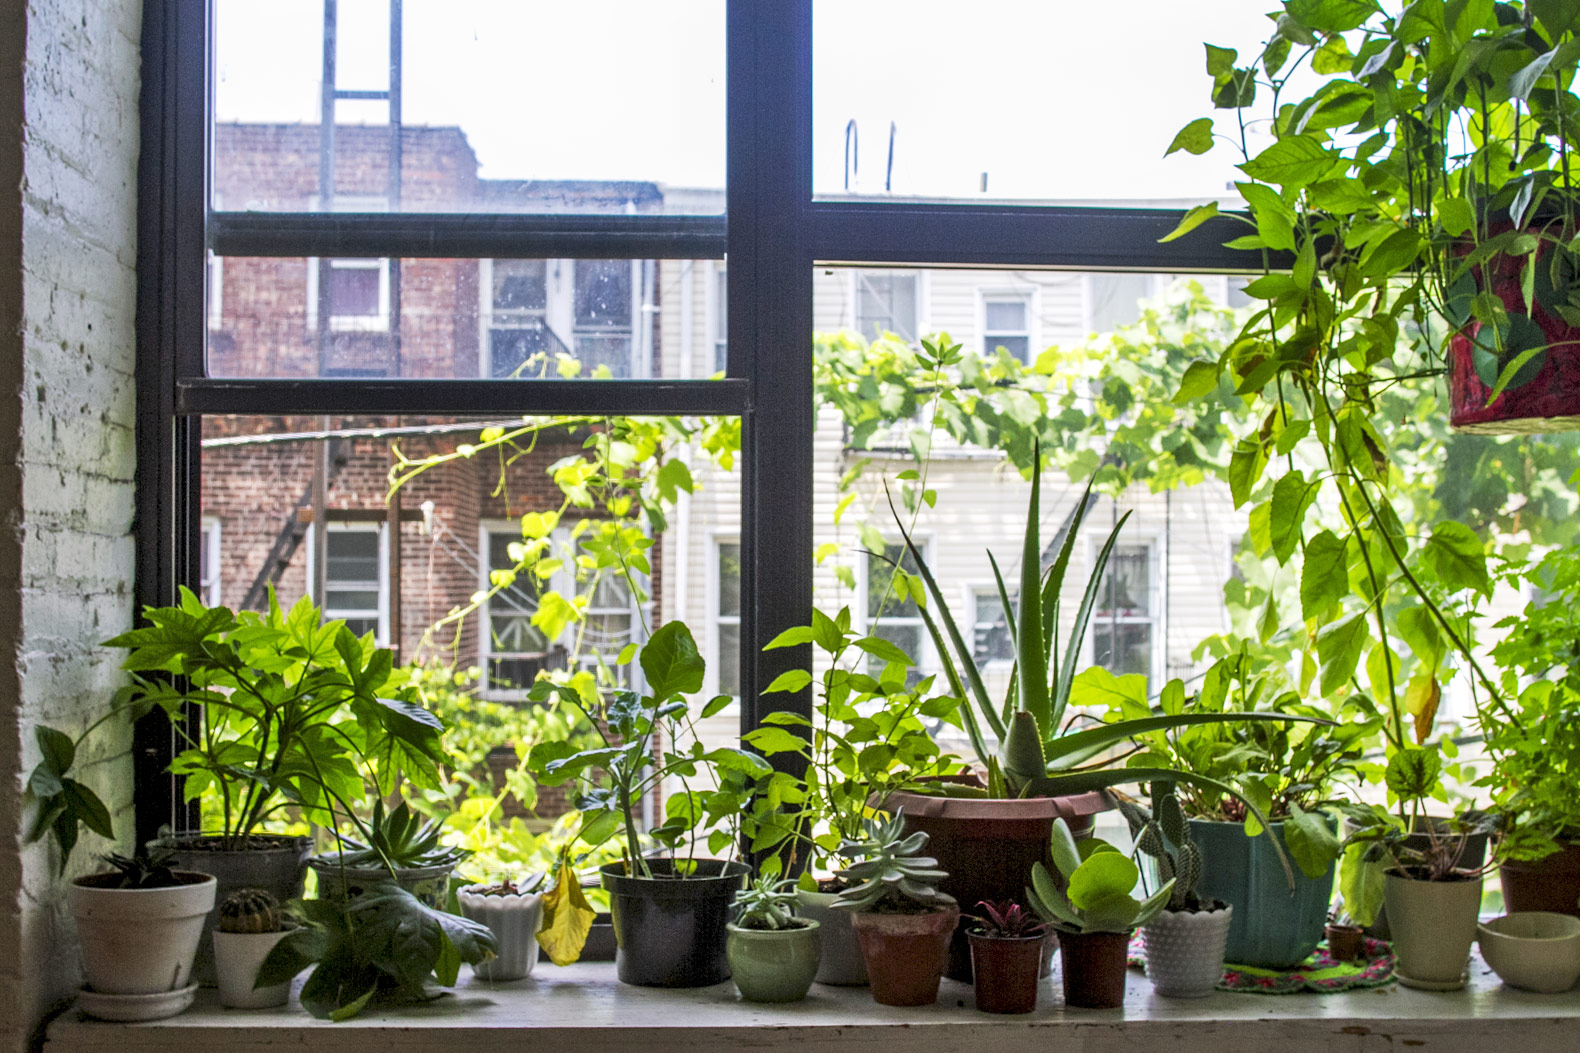 How to grow a lush garden in your tiny kitchen windowsill